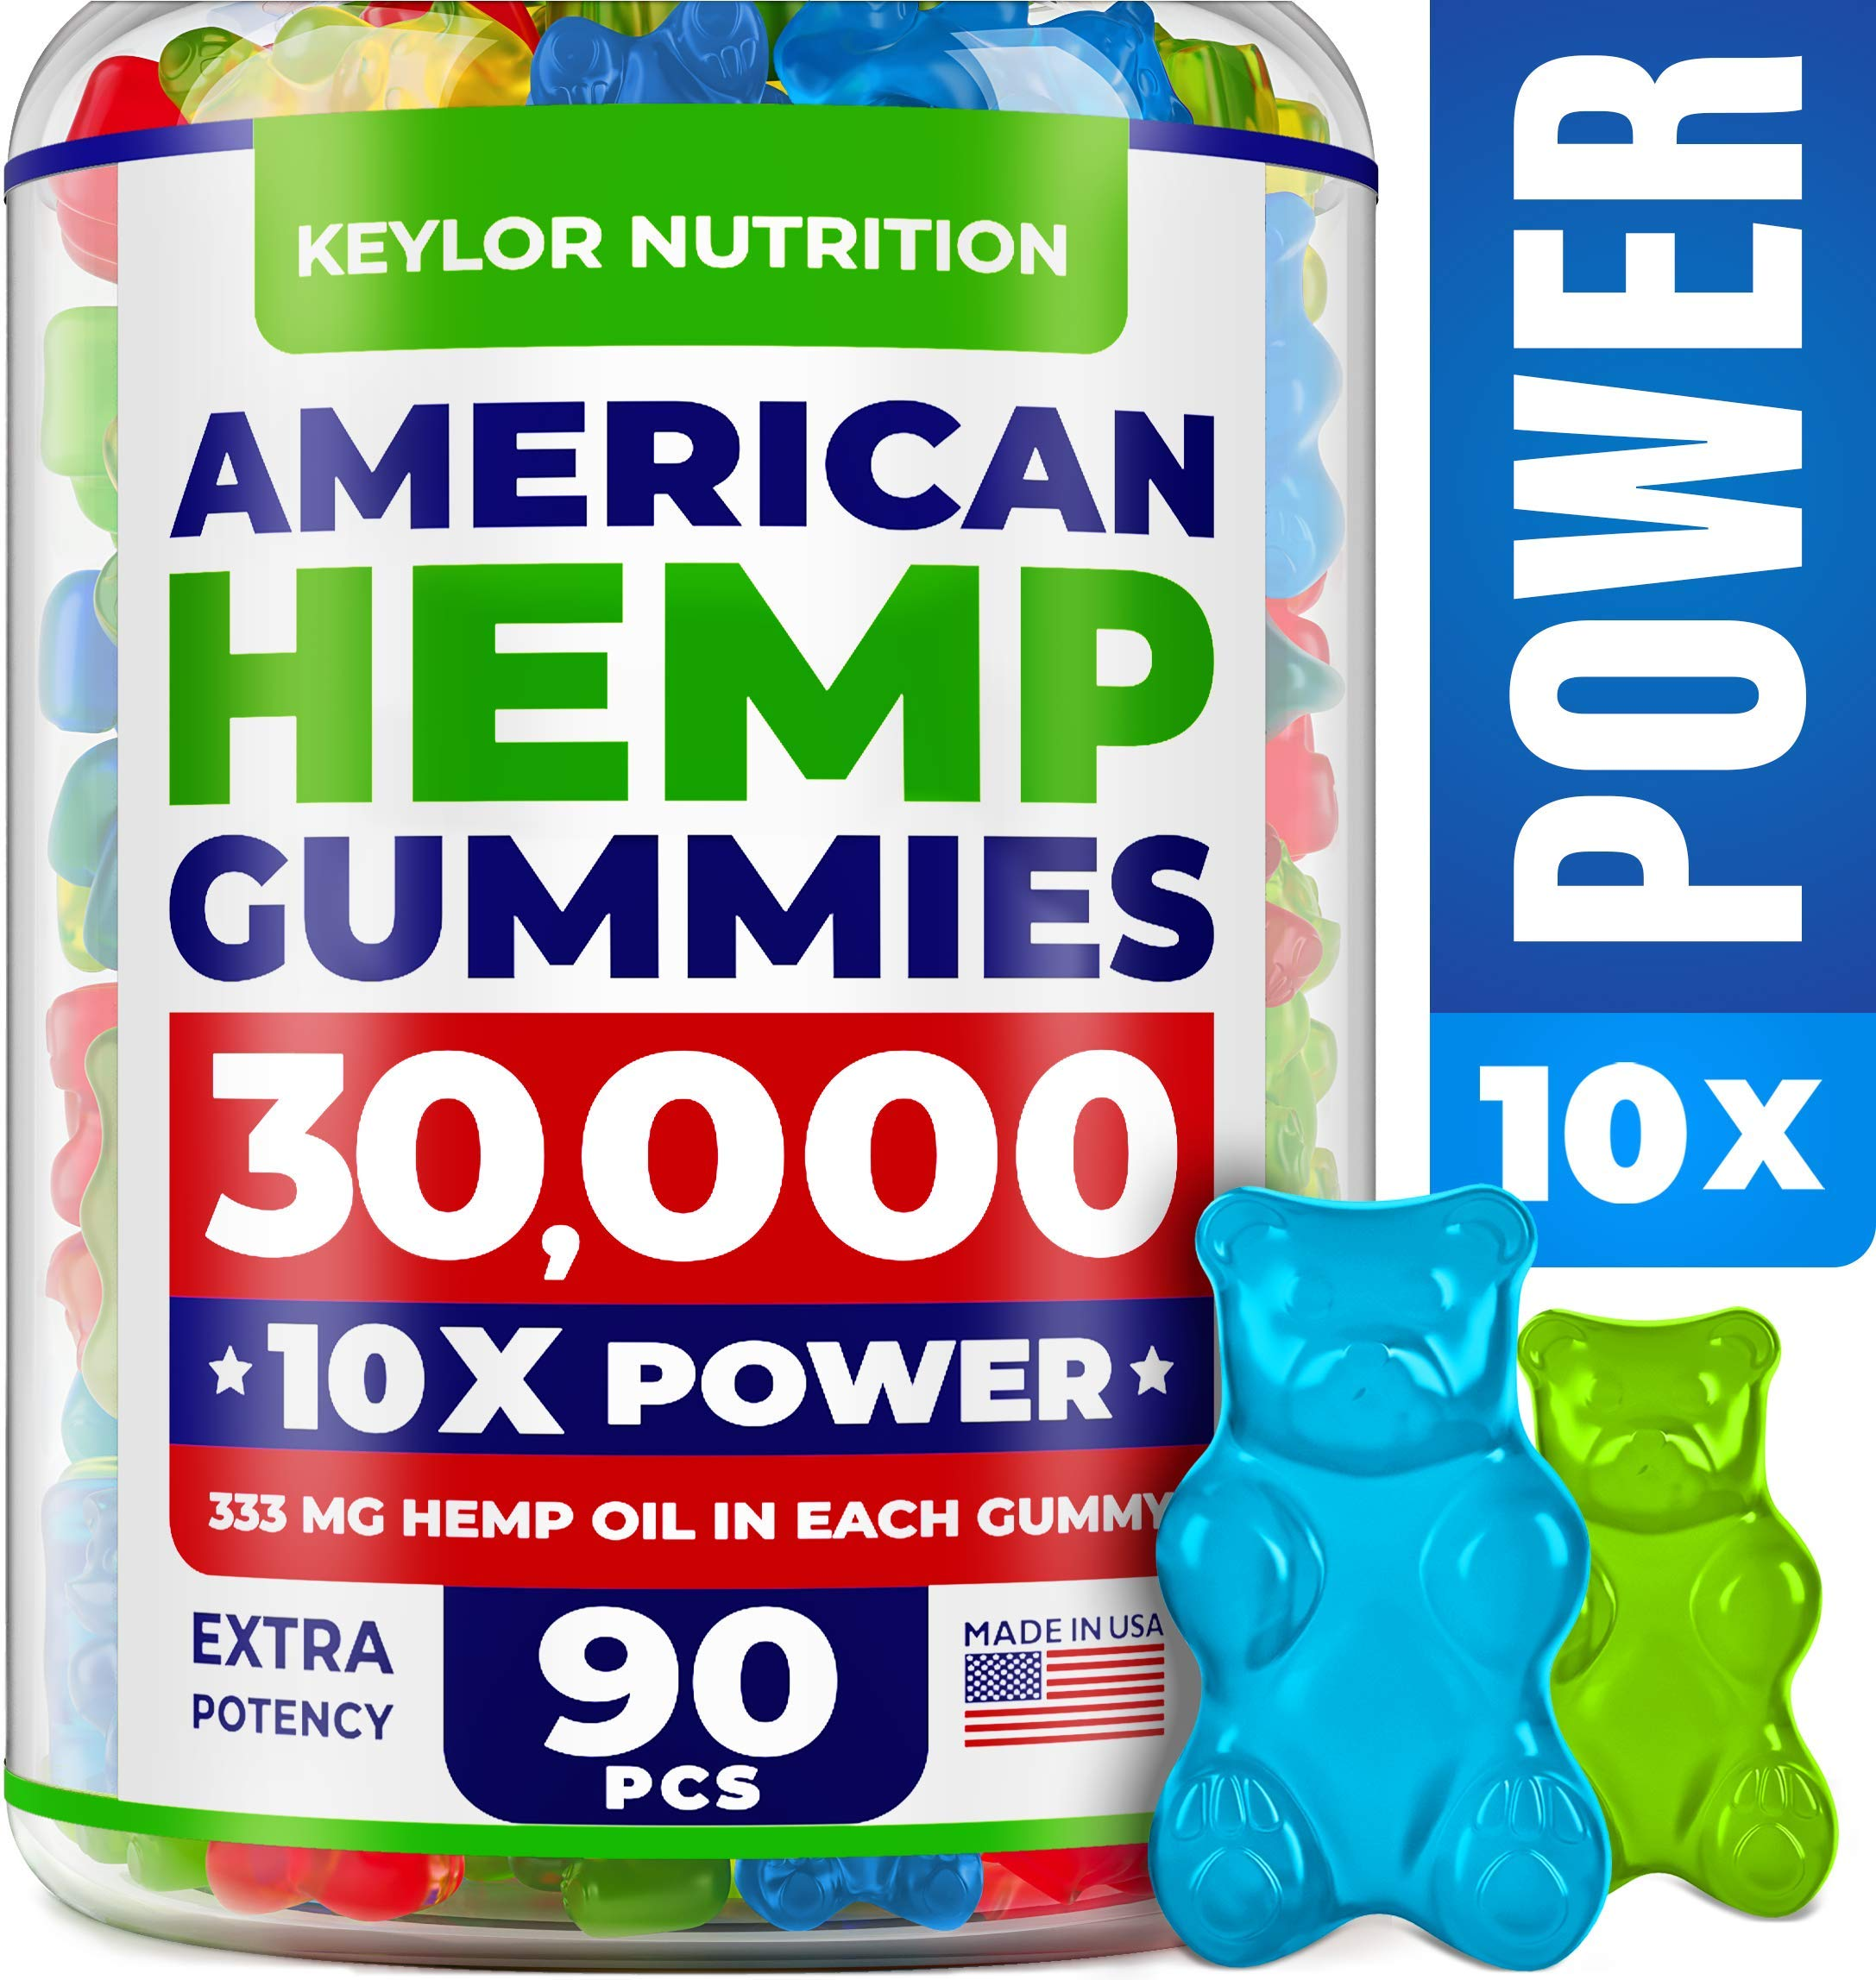 KEYLOR NUTRITION Premium Hemp Gummies - 30000 MG - All Natural Ingredients - Relief for Stress, Inflammation, Sleep, Anxiety, Depression - Vitamins & Omega 3,6,9 - Made in The USA - 90 pcs by KEYLOR NUTRITION